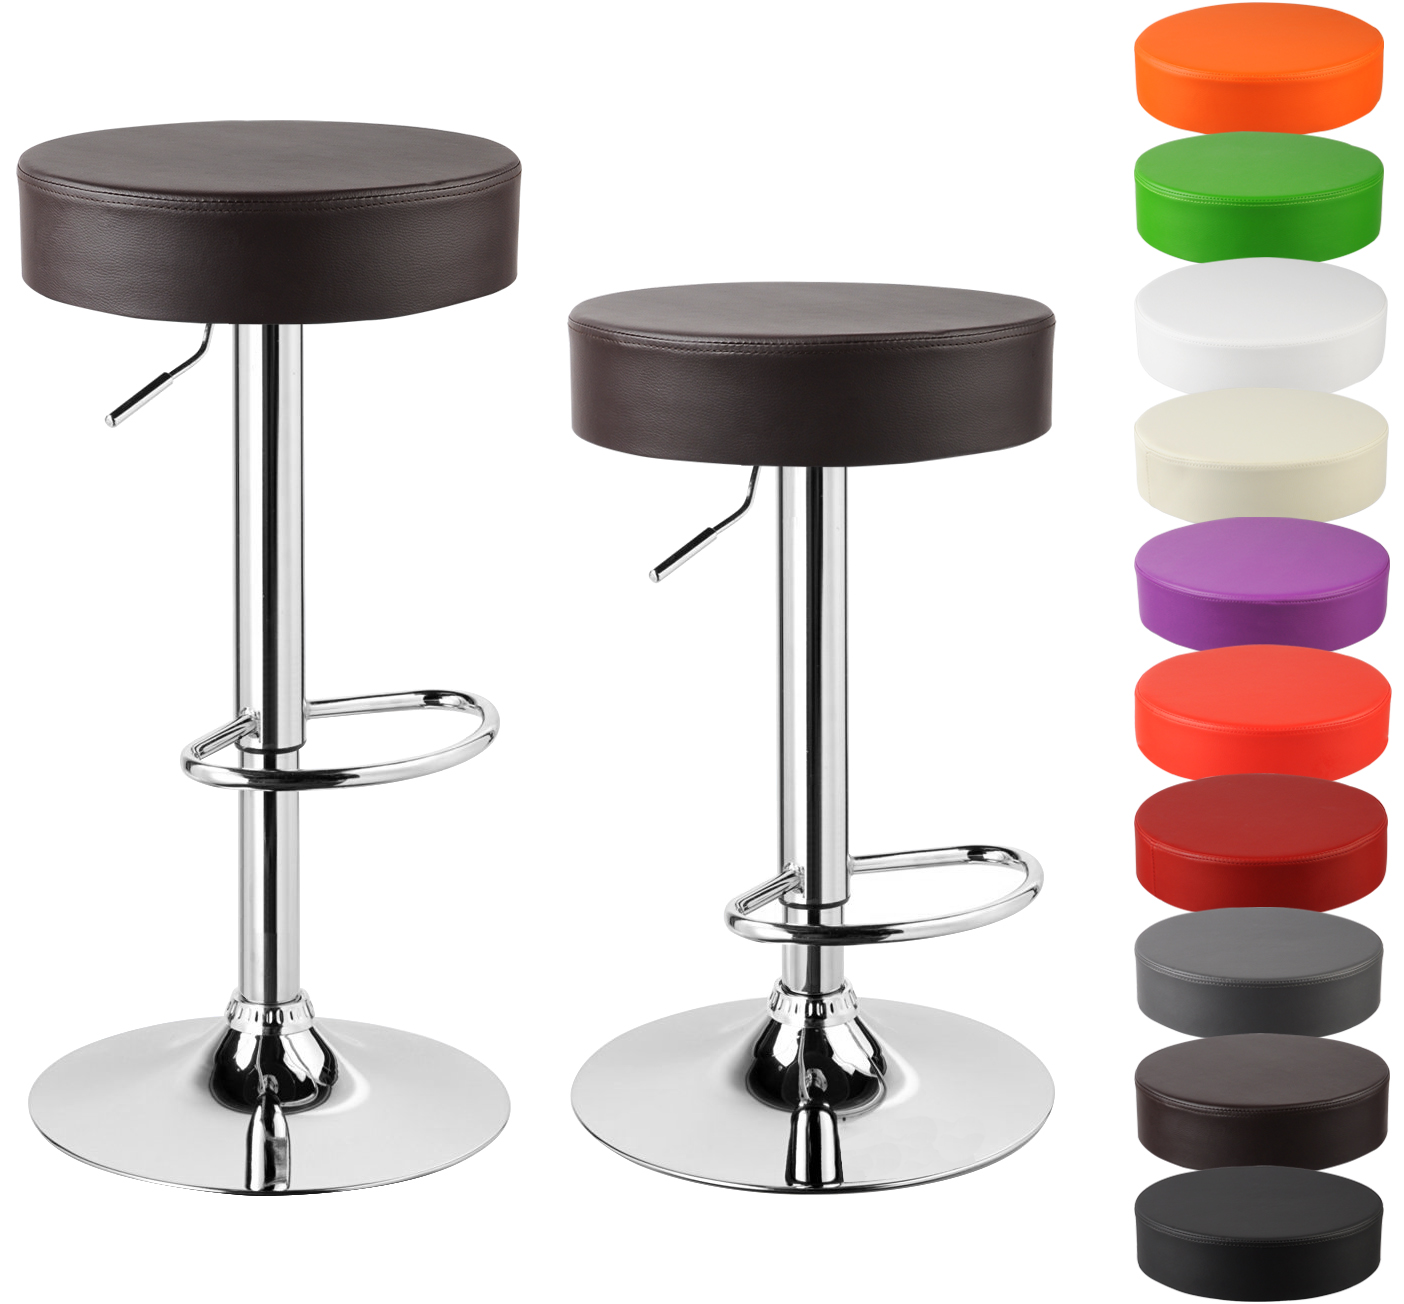 Faux Leather Bar Stools Set Of 2 Kitchen Breakfast Chrome Stools Chair U018 Ebay